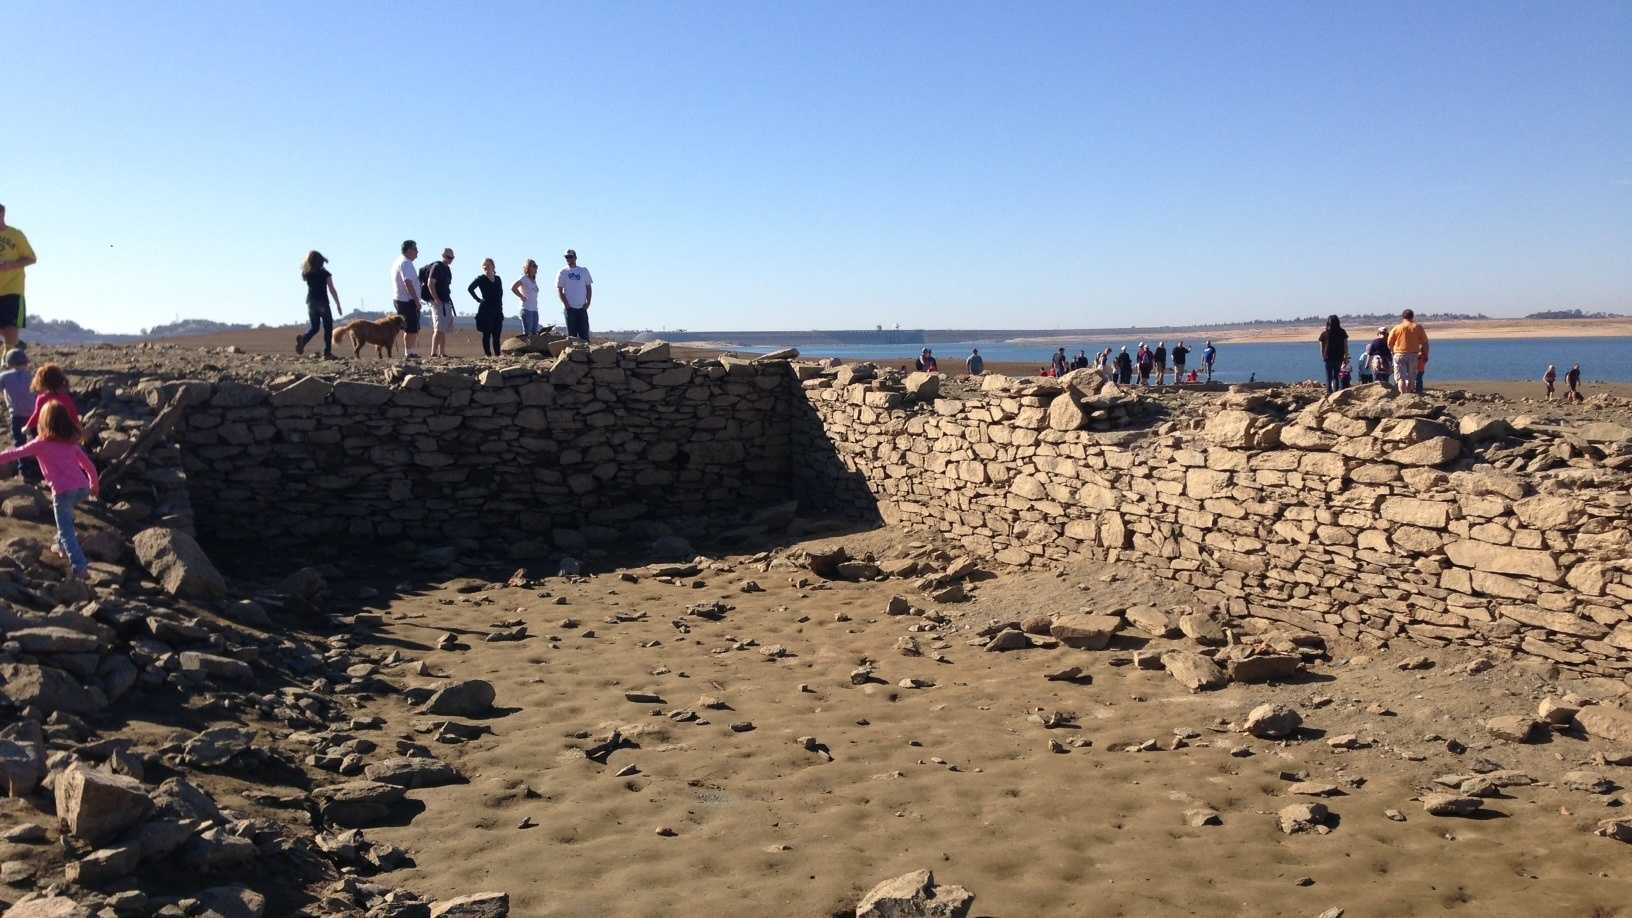 Hundreds of people headed out to Folsom Lake to see ruins from the old Mormon Island settlement.